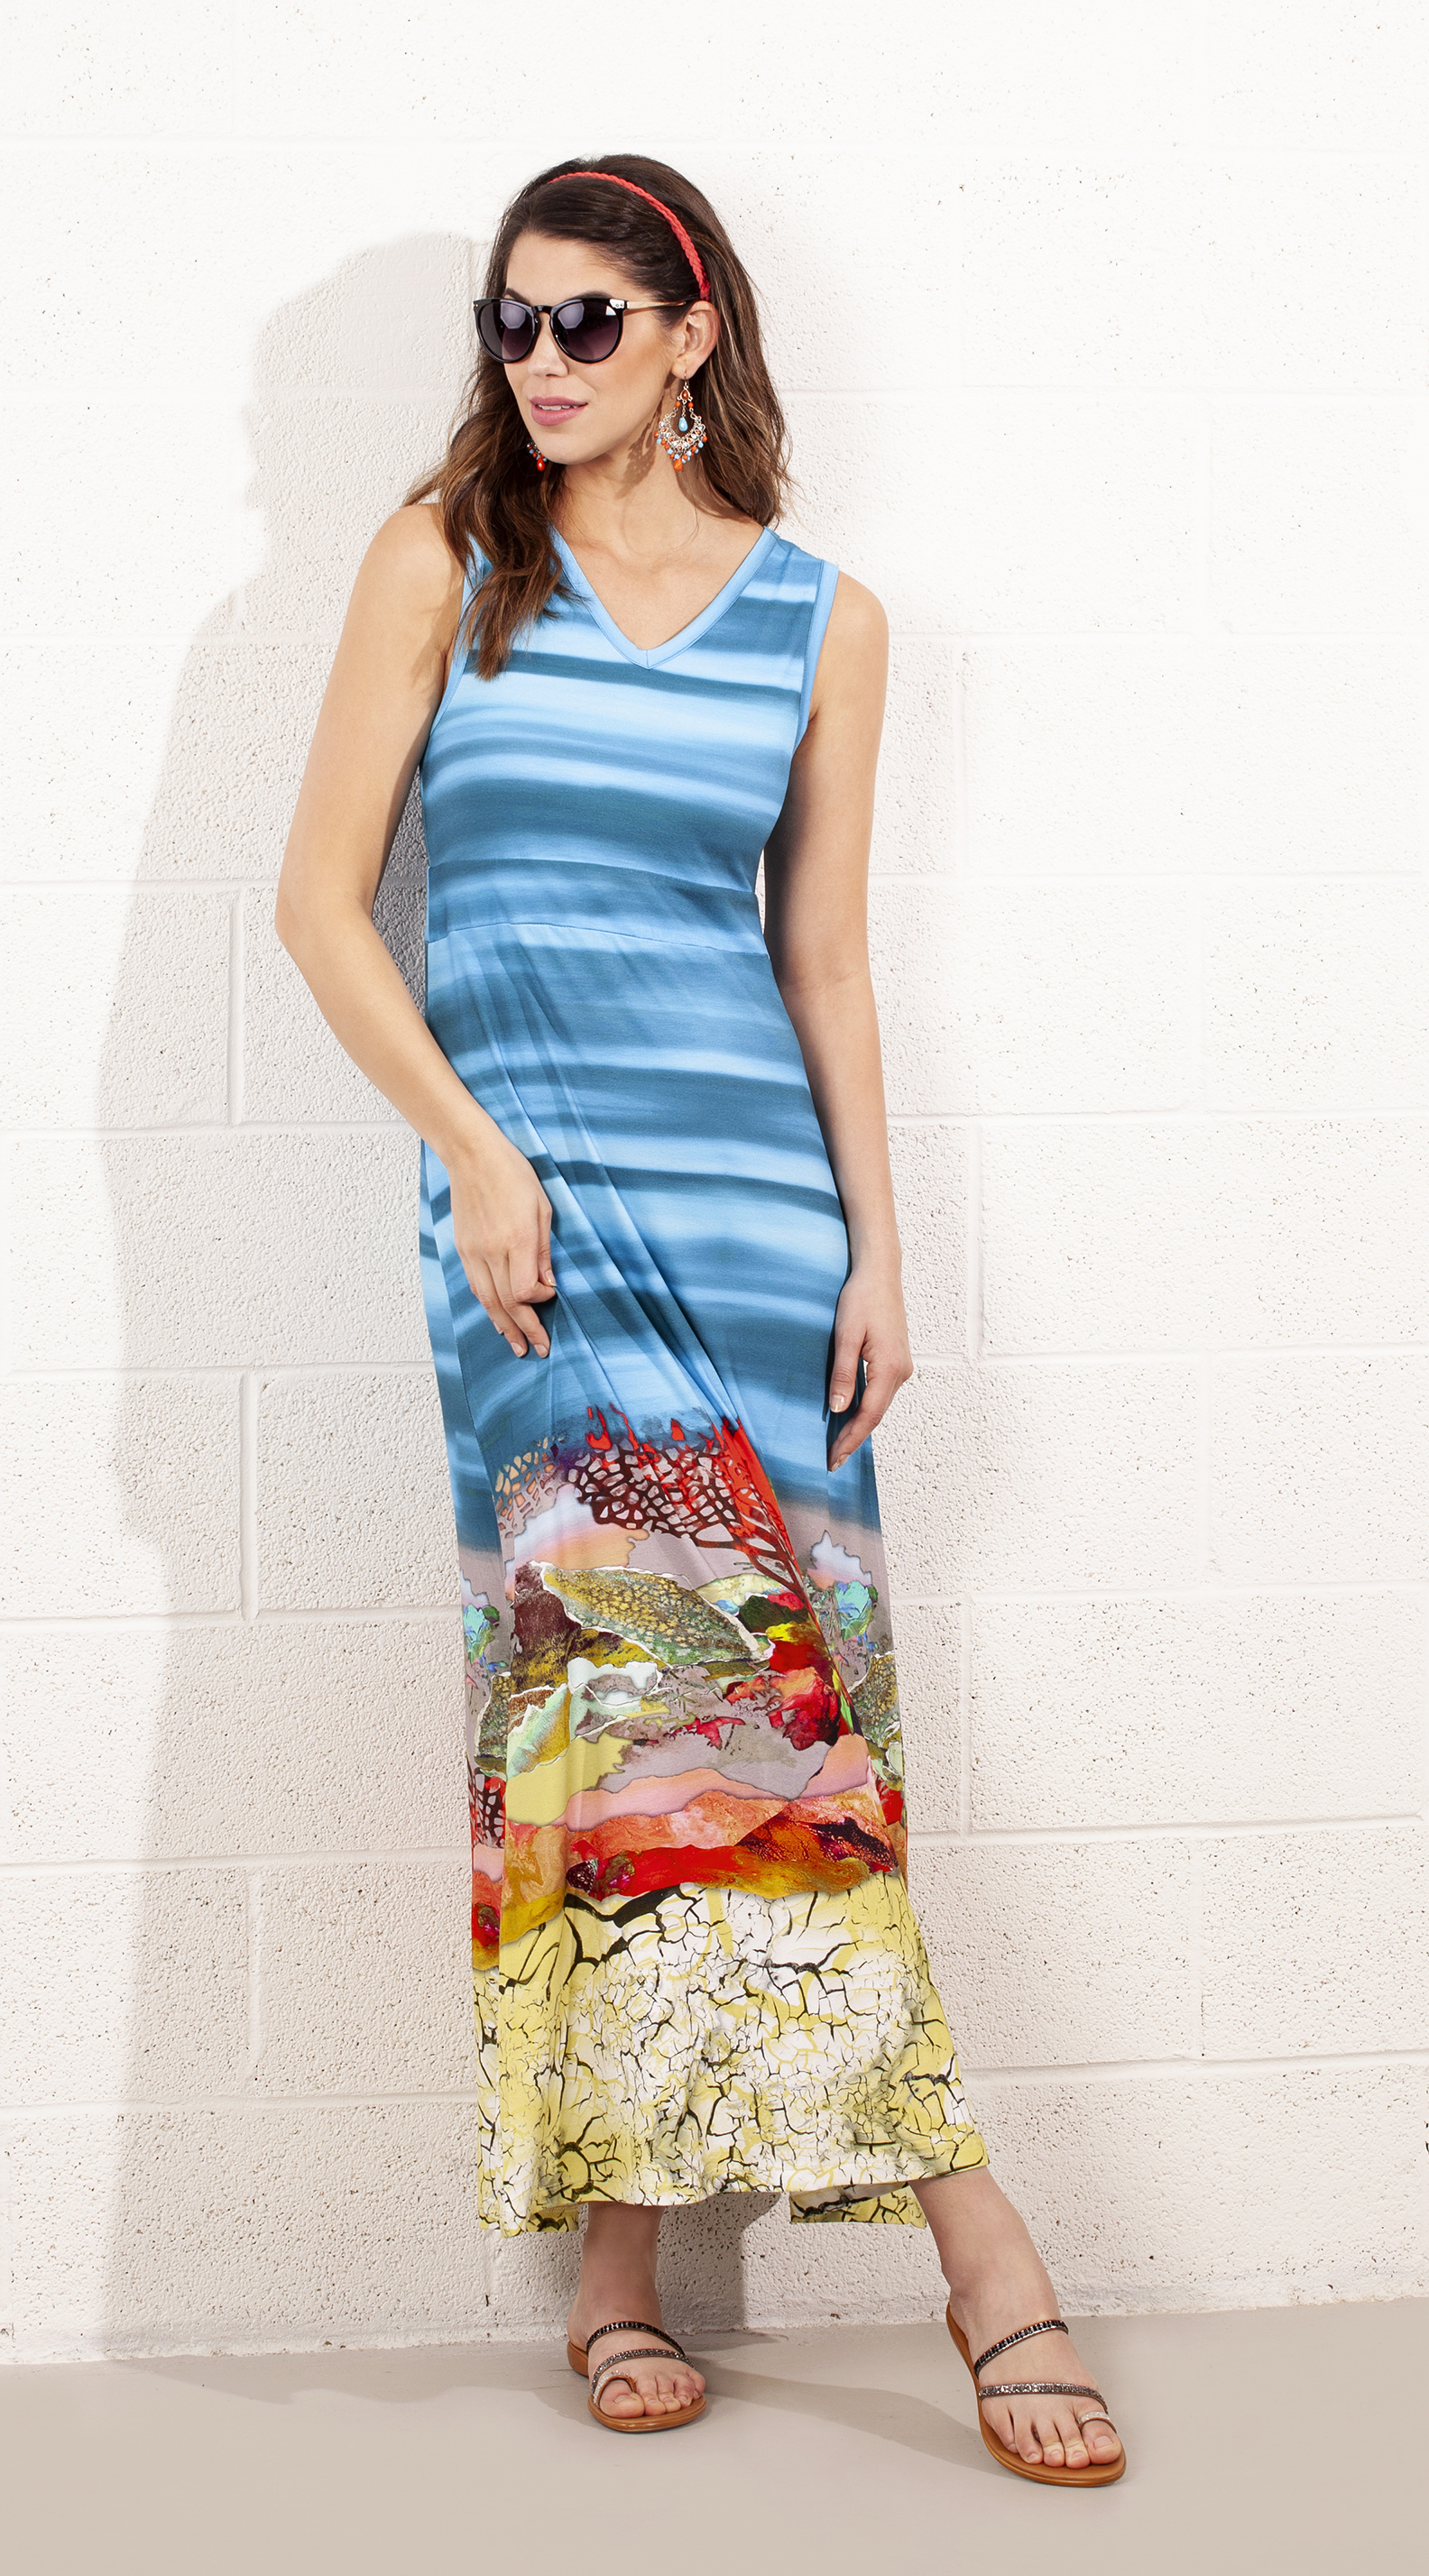 Dolcezza: Under The Sea Coral Scene Art Maxi Dress SOLD OUT DOLCEZZA_19213_N